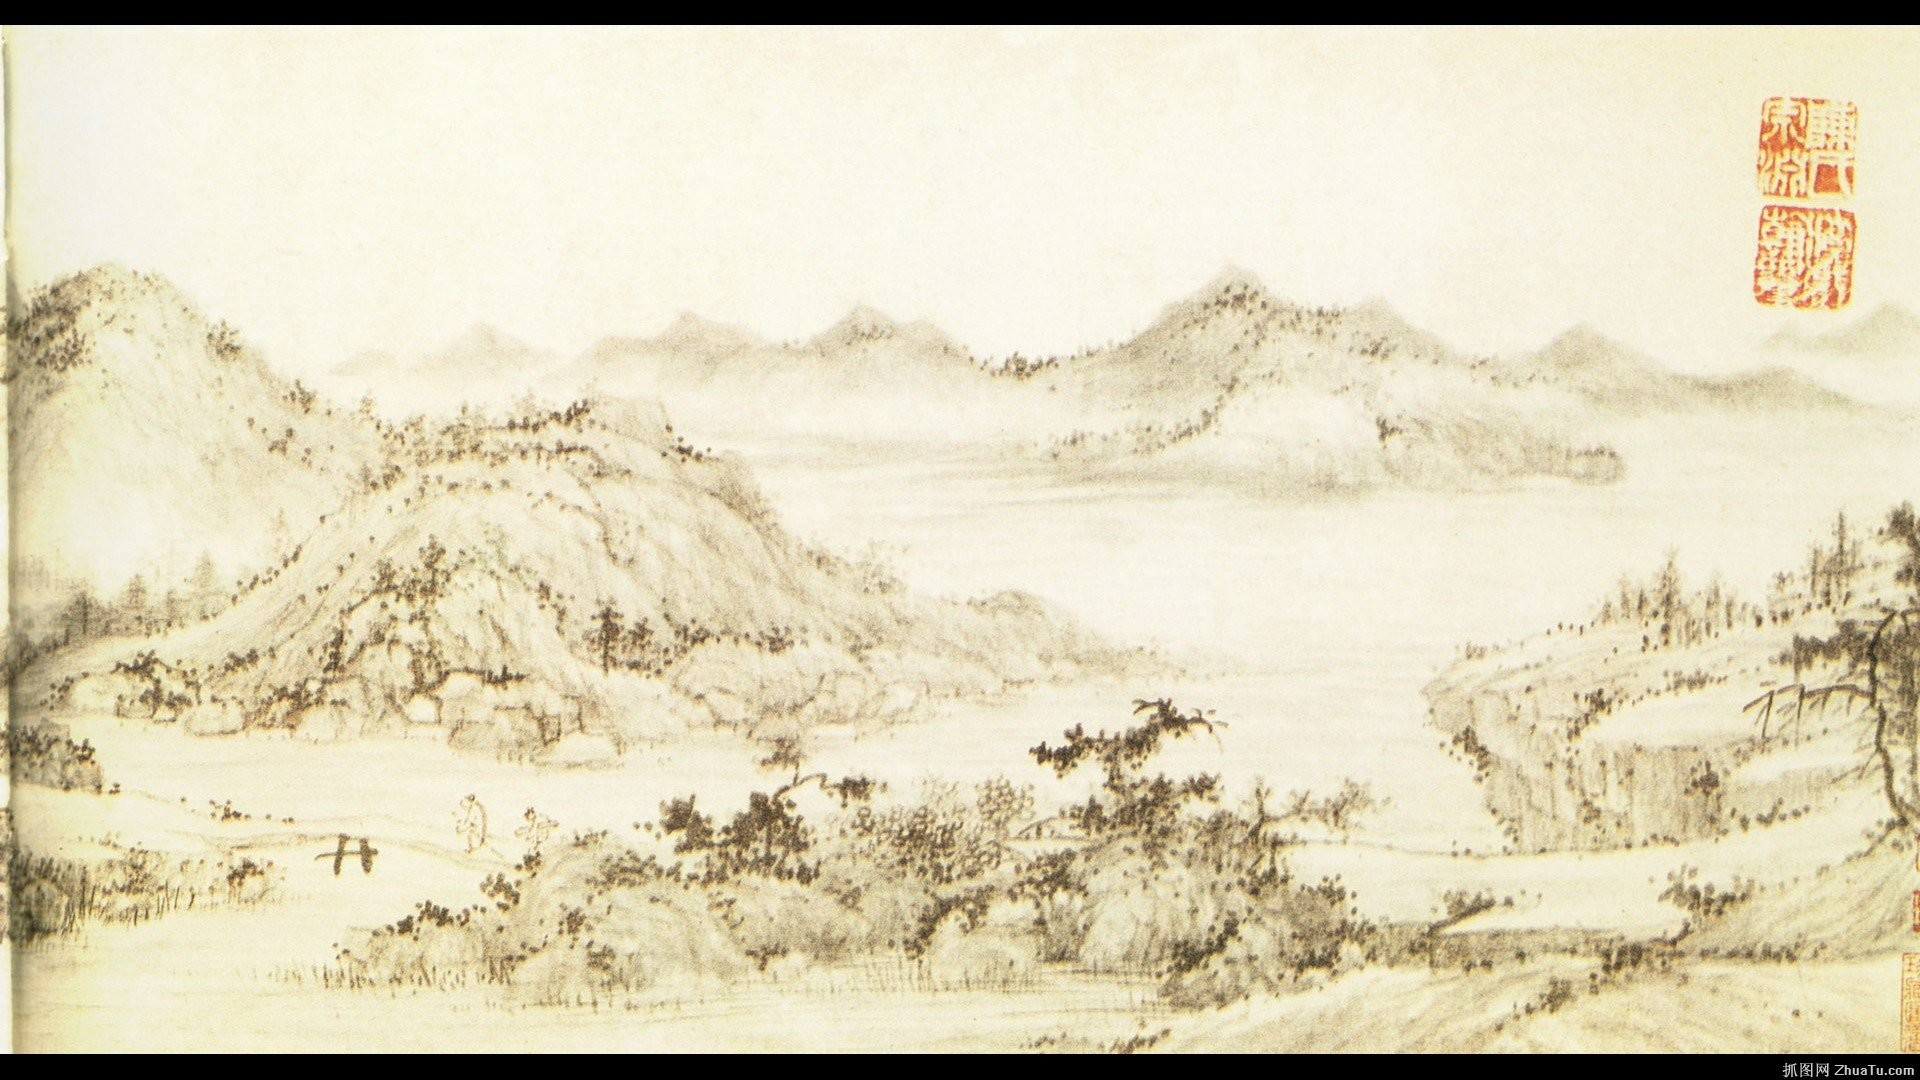 Res: 1920x1080, chinese painting with asian scenery wallpaper.